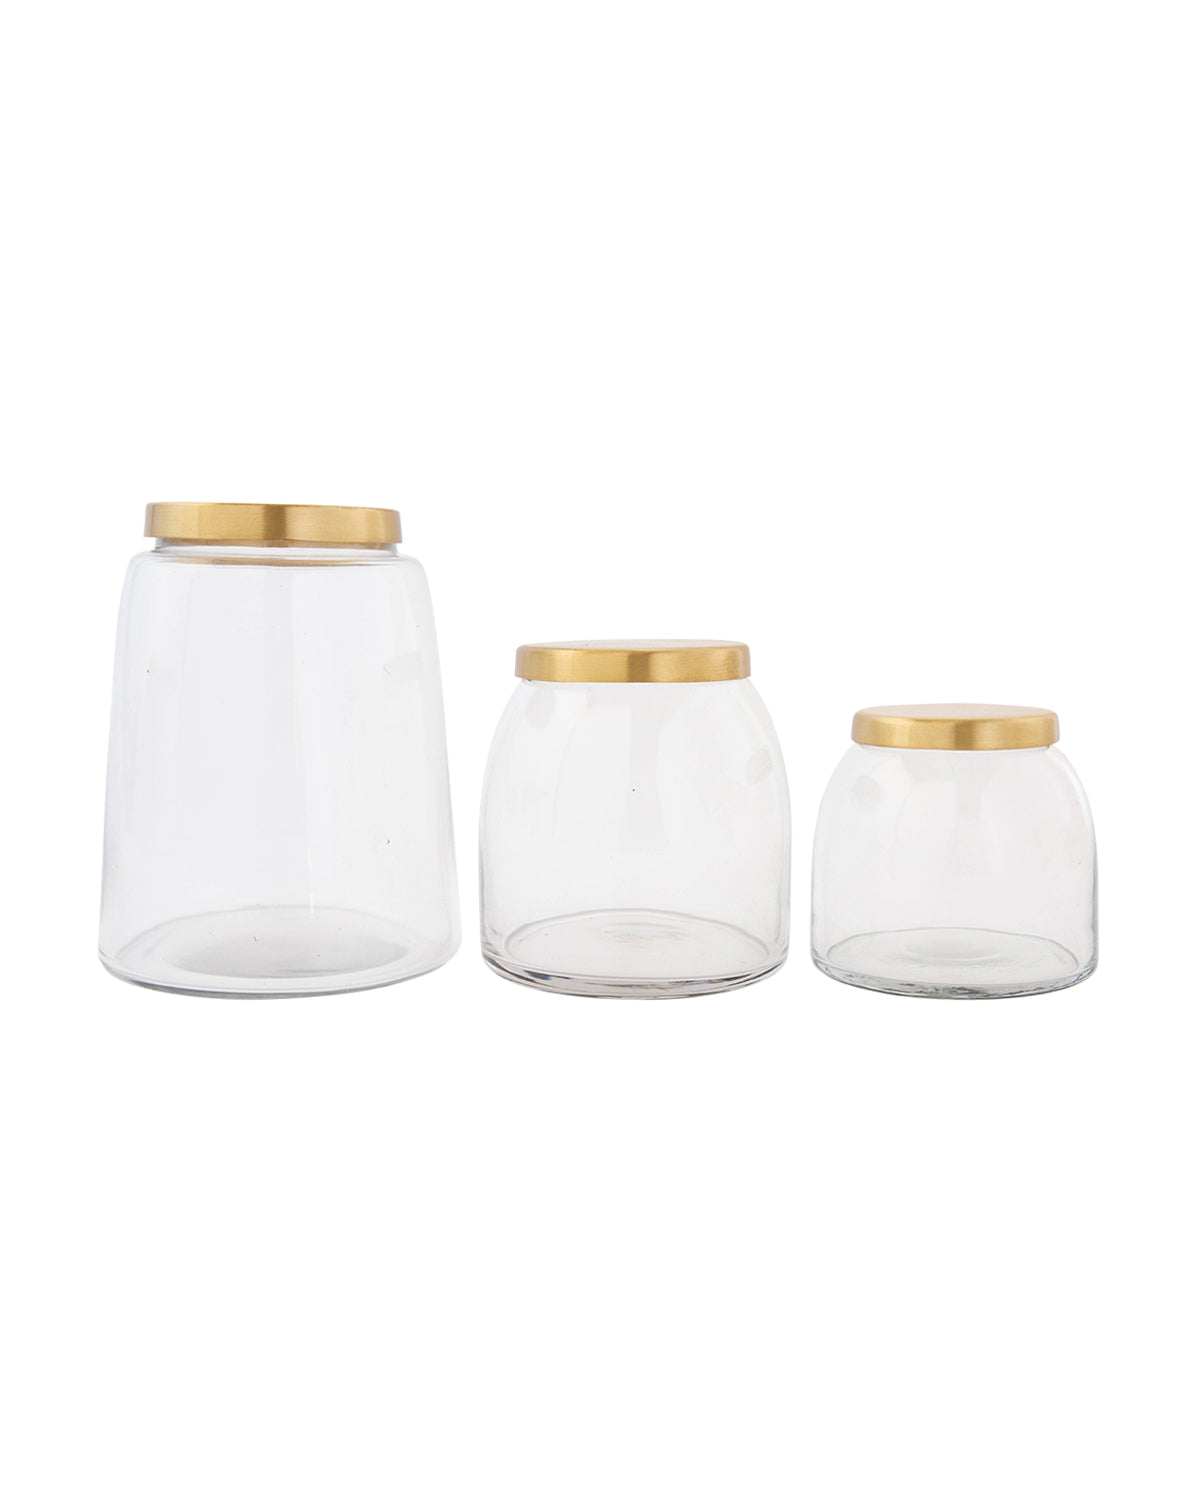 Brass Lidded Jars